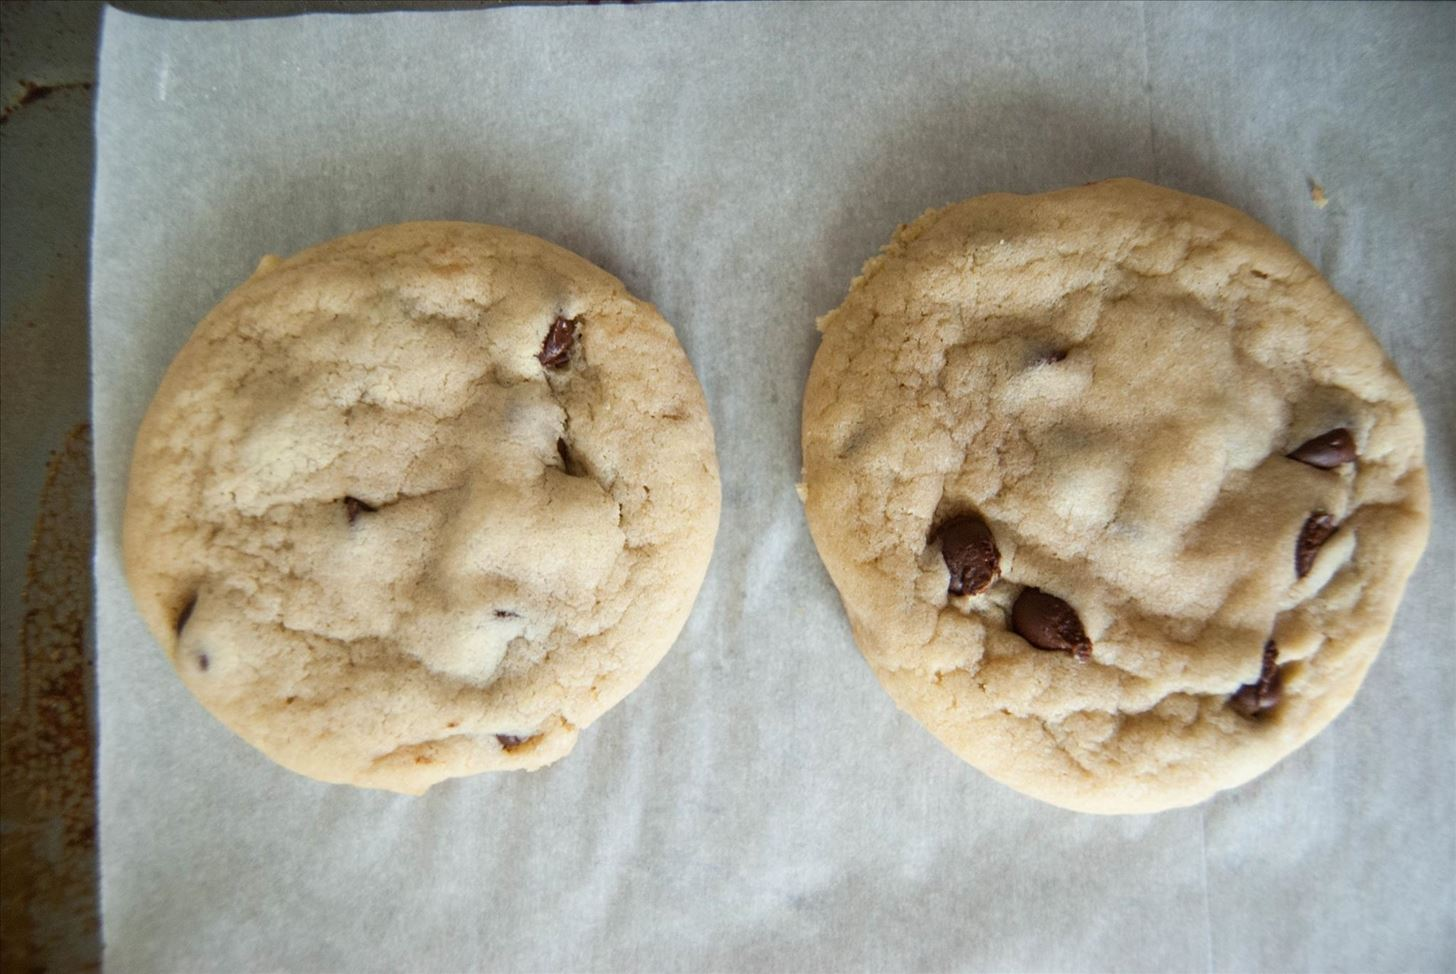 Use Cake Flour to Get Pillowy Soft-Baked Cookies